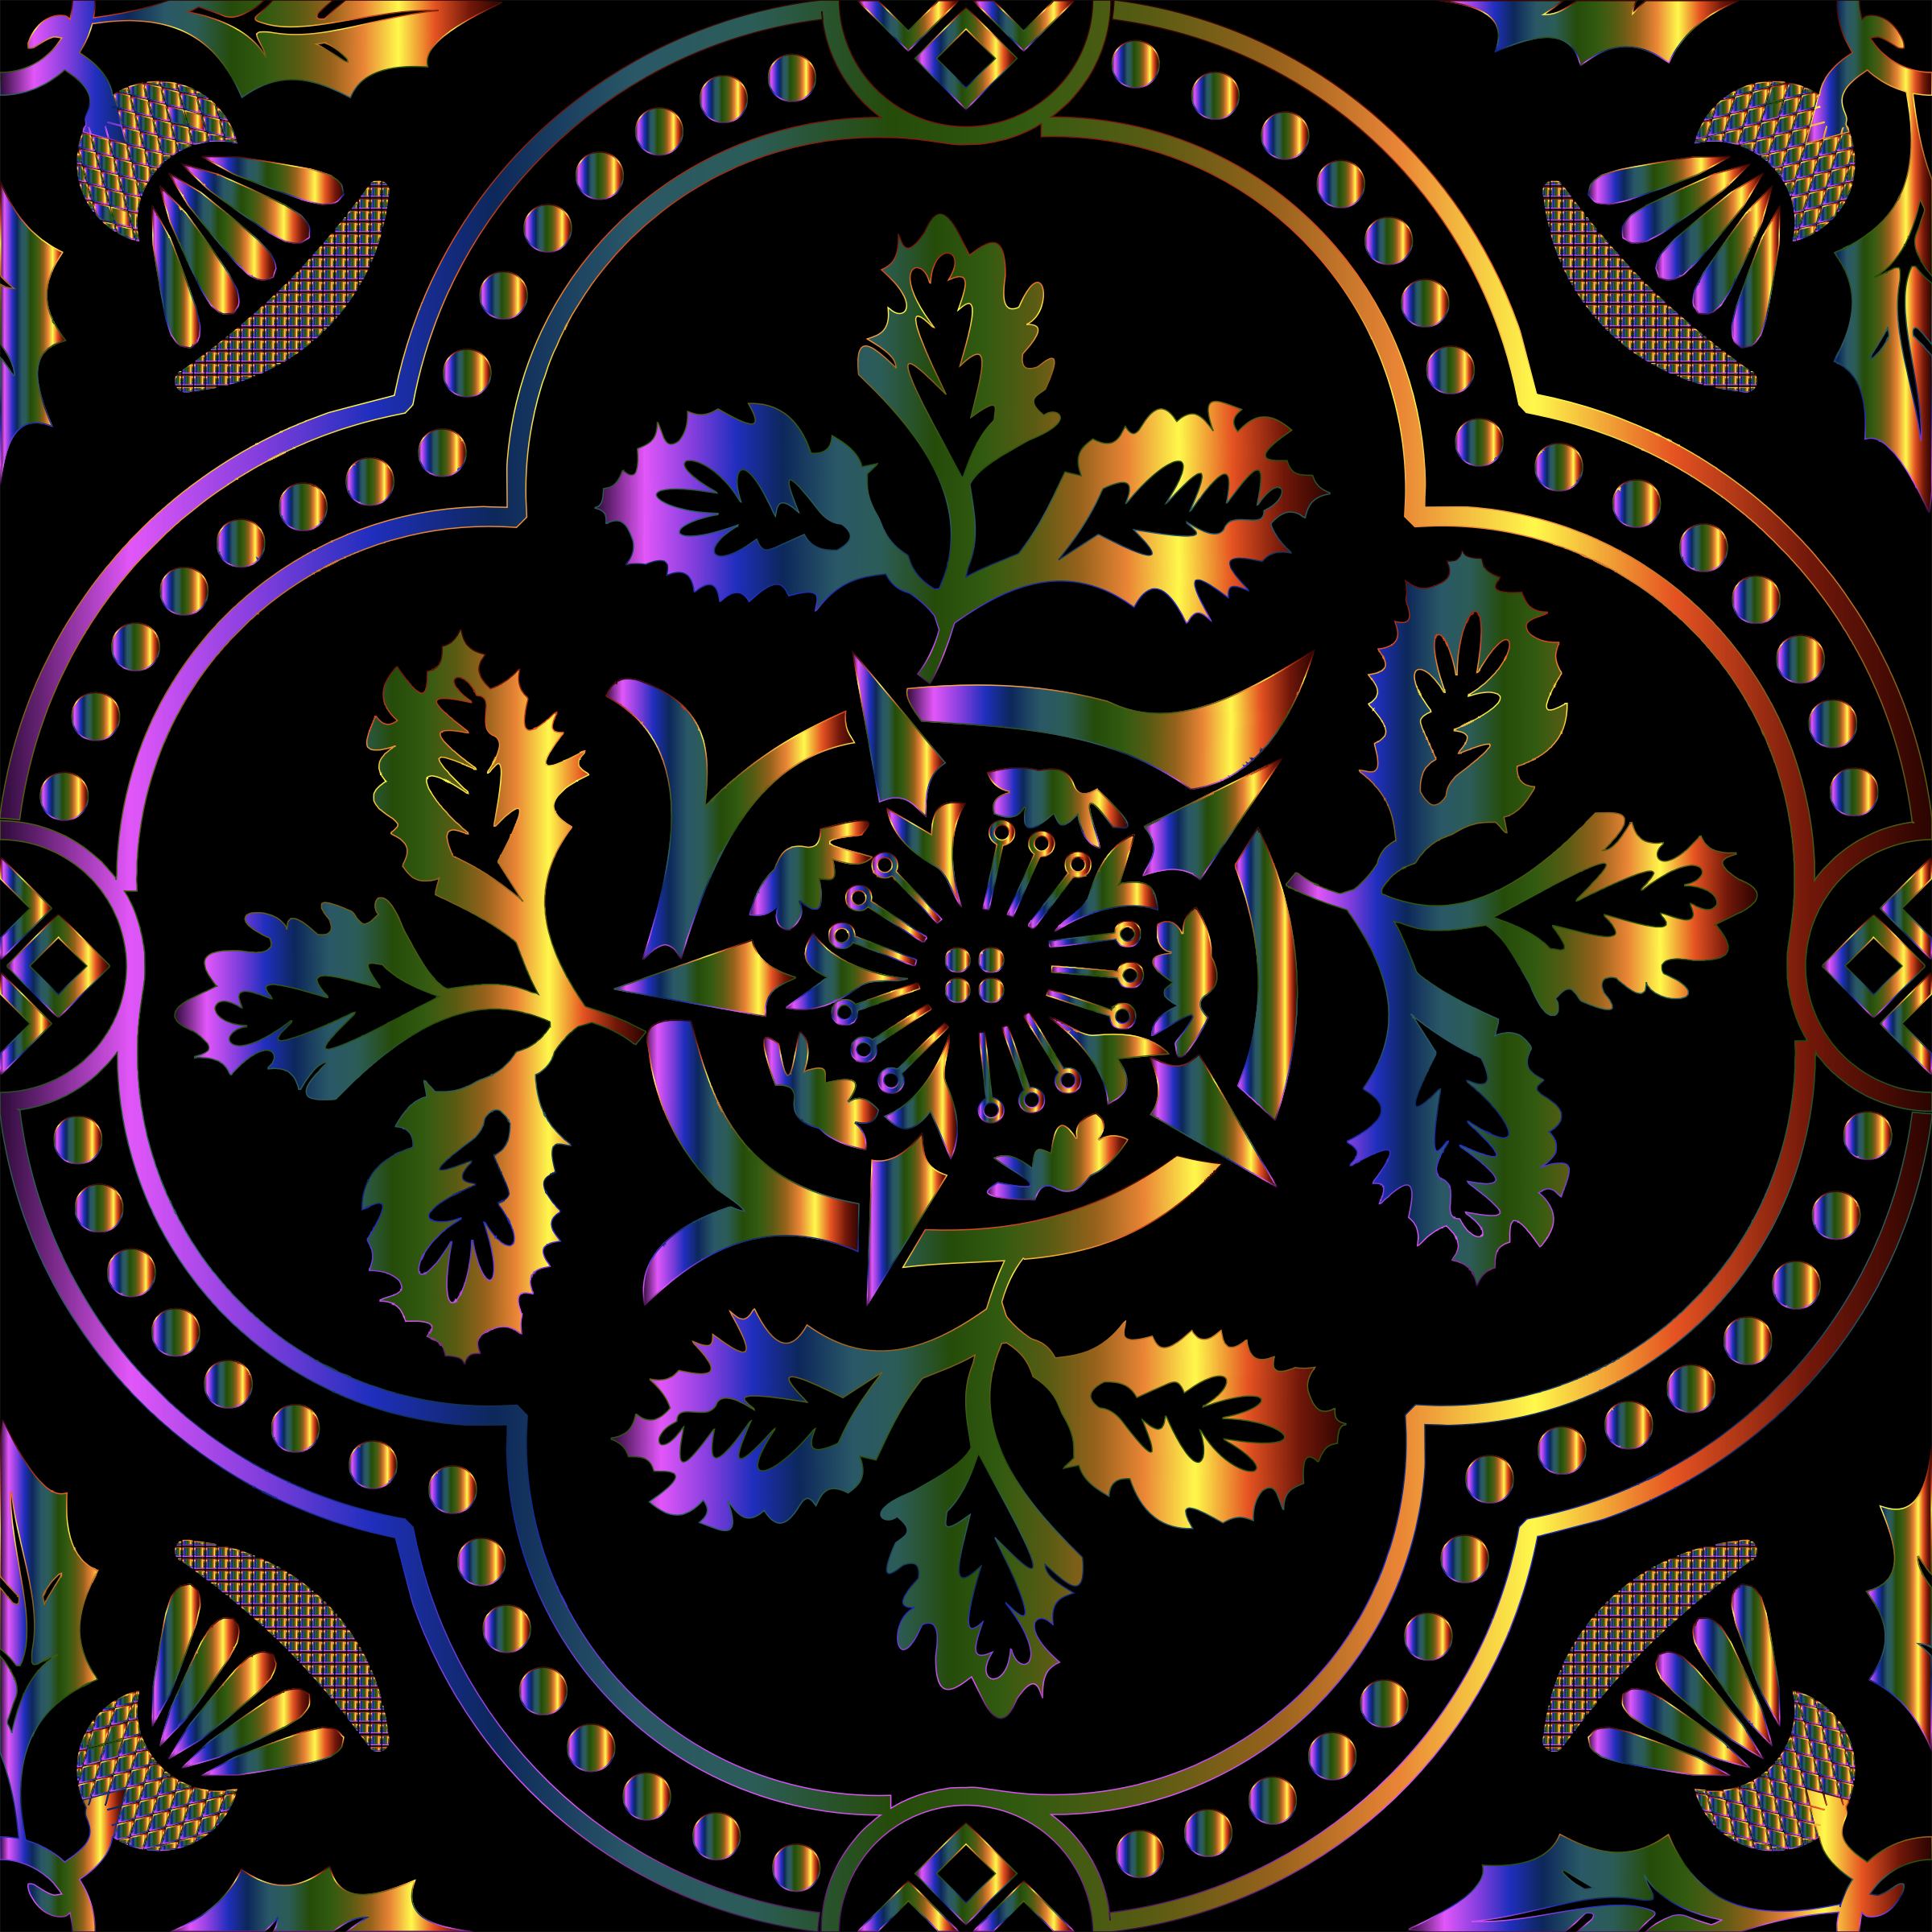 Decorative Floral Design Enhanced 2 by GDJ